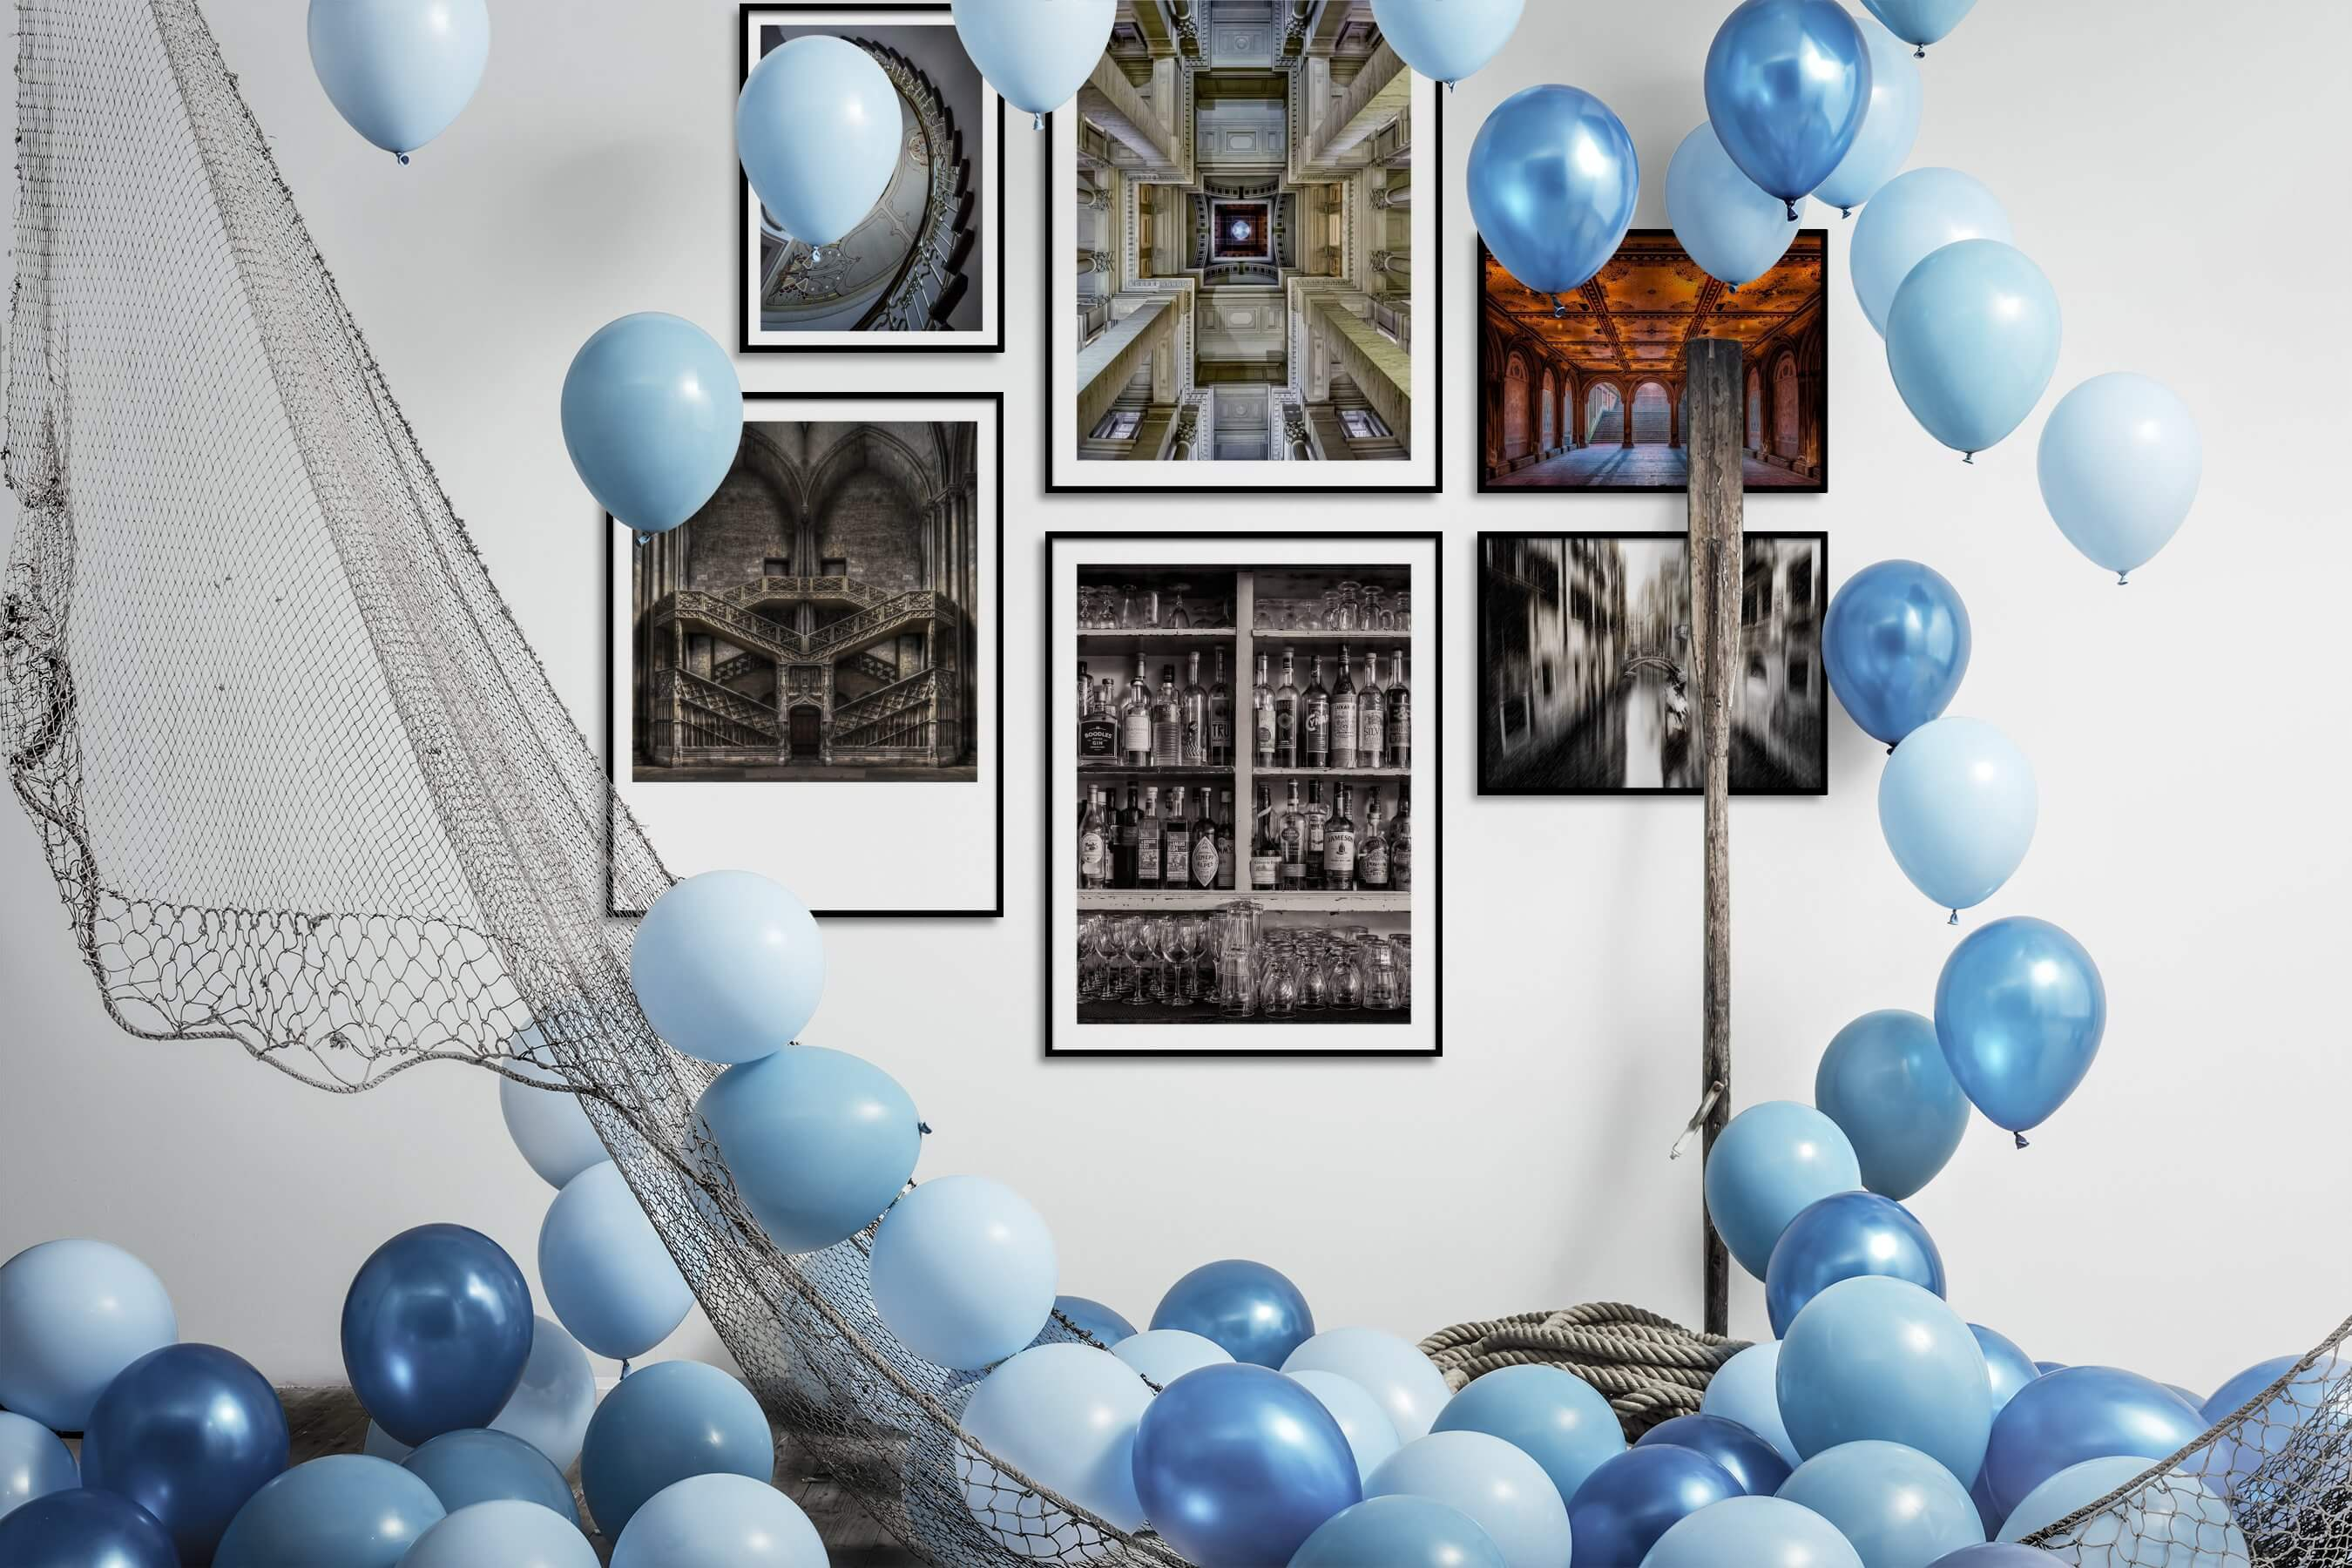 Gallery wall idea with six framed pictures arranged on a wall depicting For the Maximalist, Vintage, and City Life